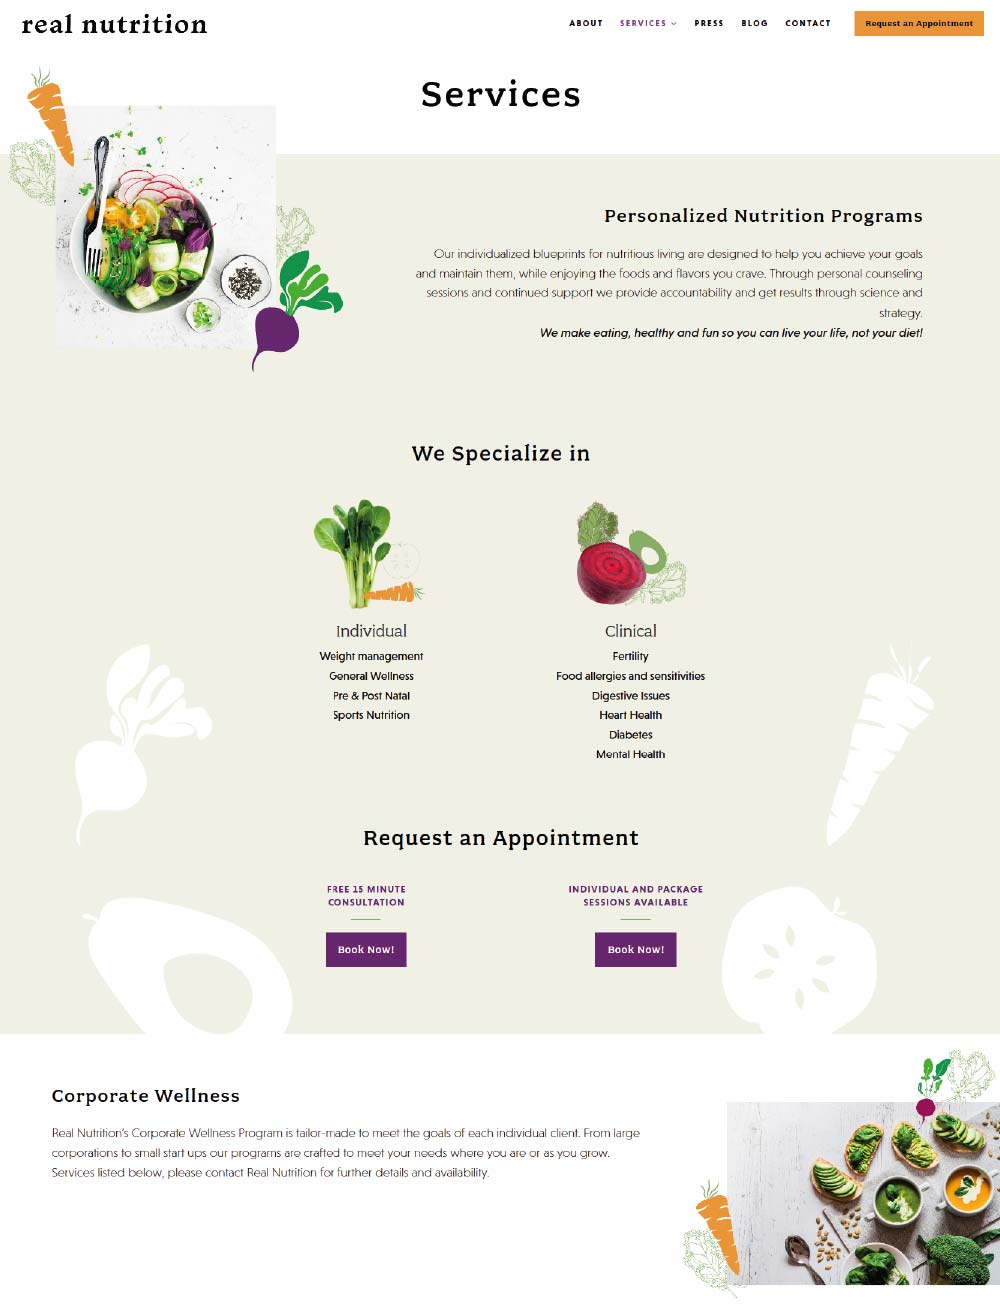 Web design page from Real Nutrition NYC